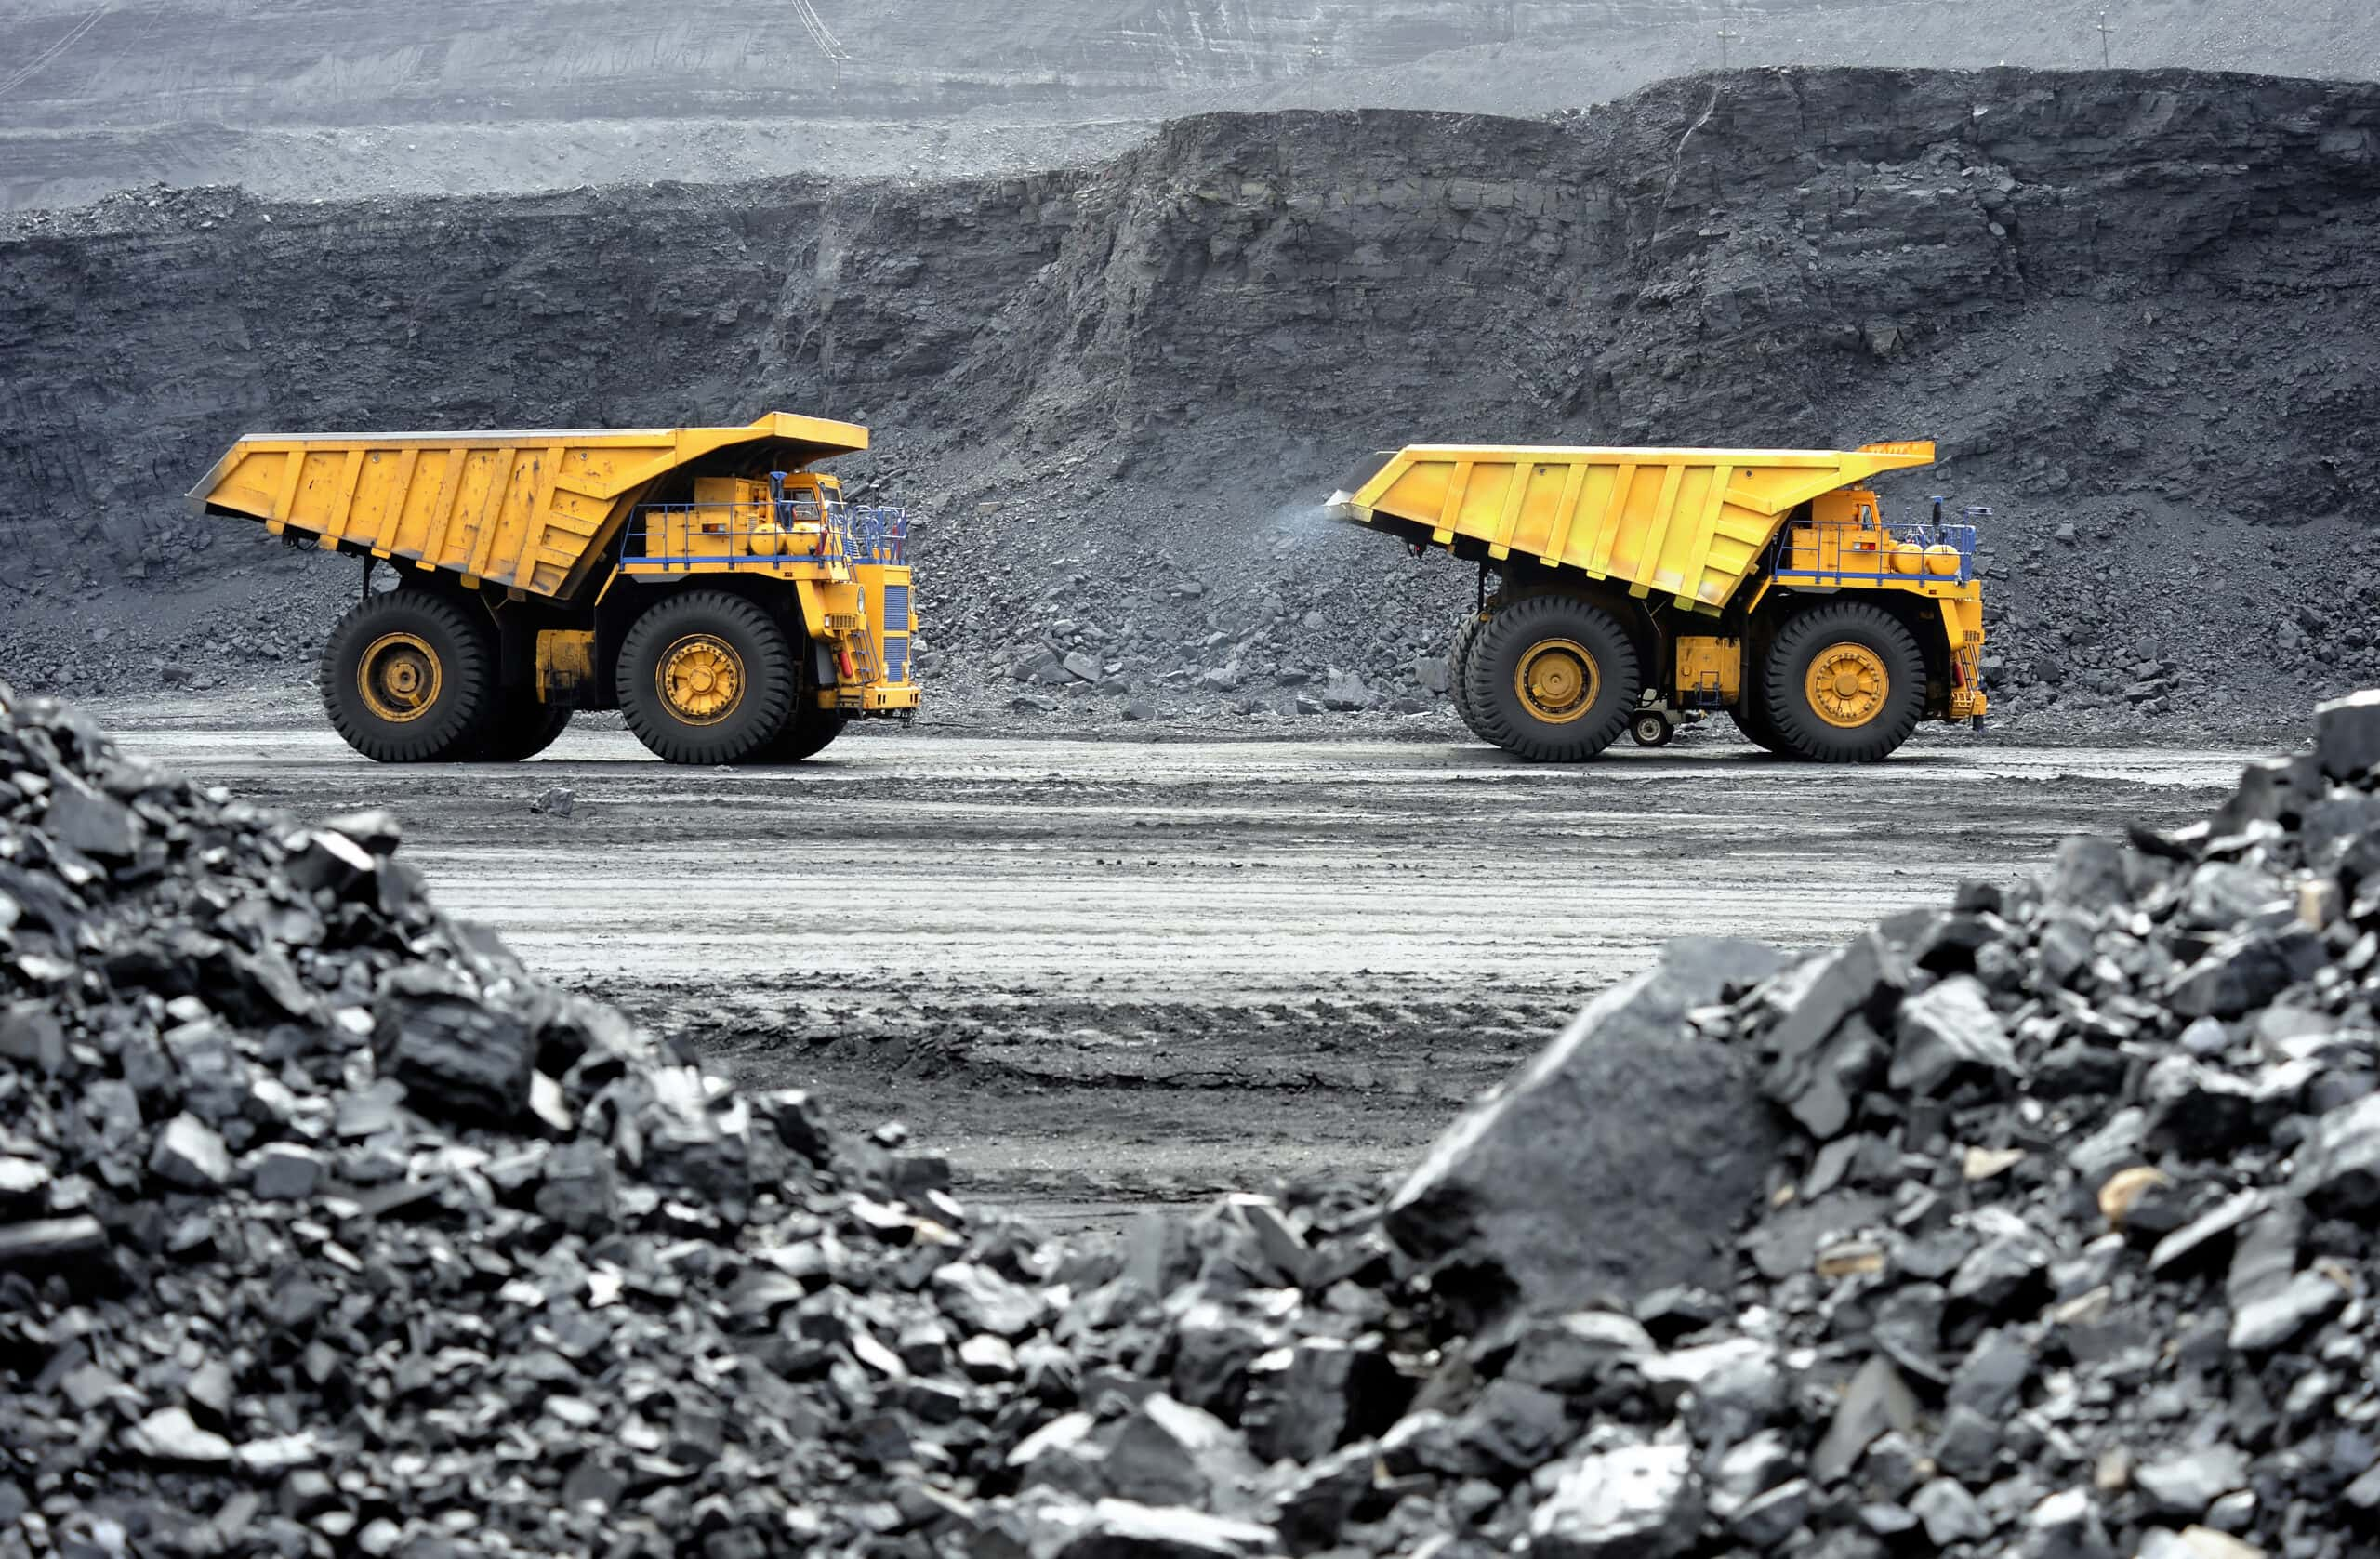 Production,Useful,Minerals.,The,Dump,Truck